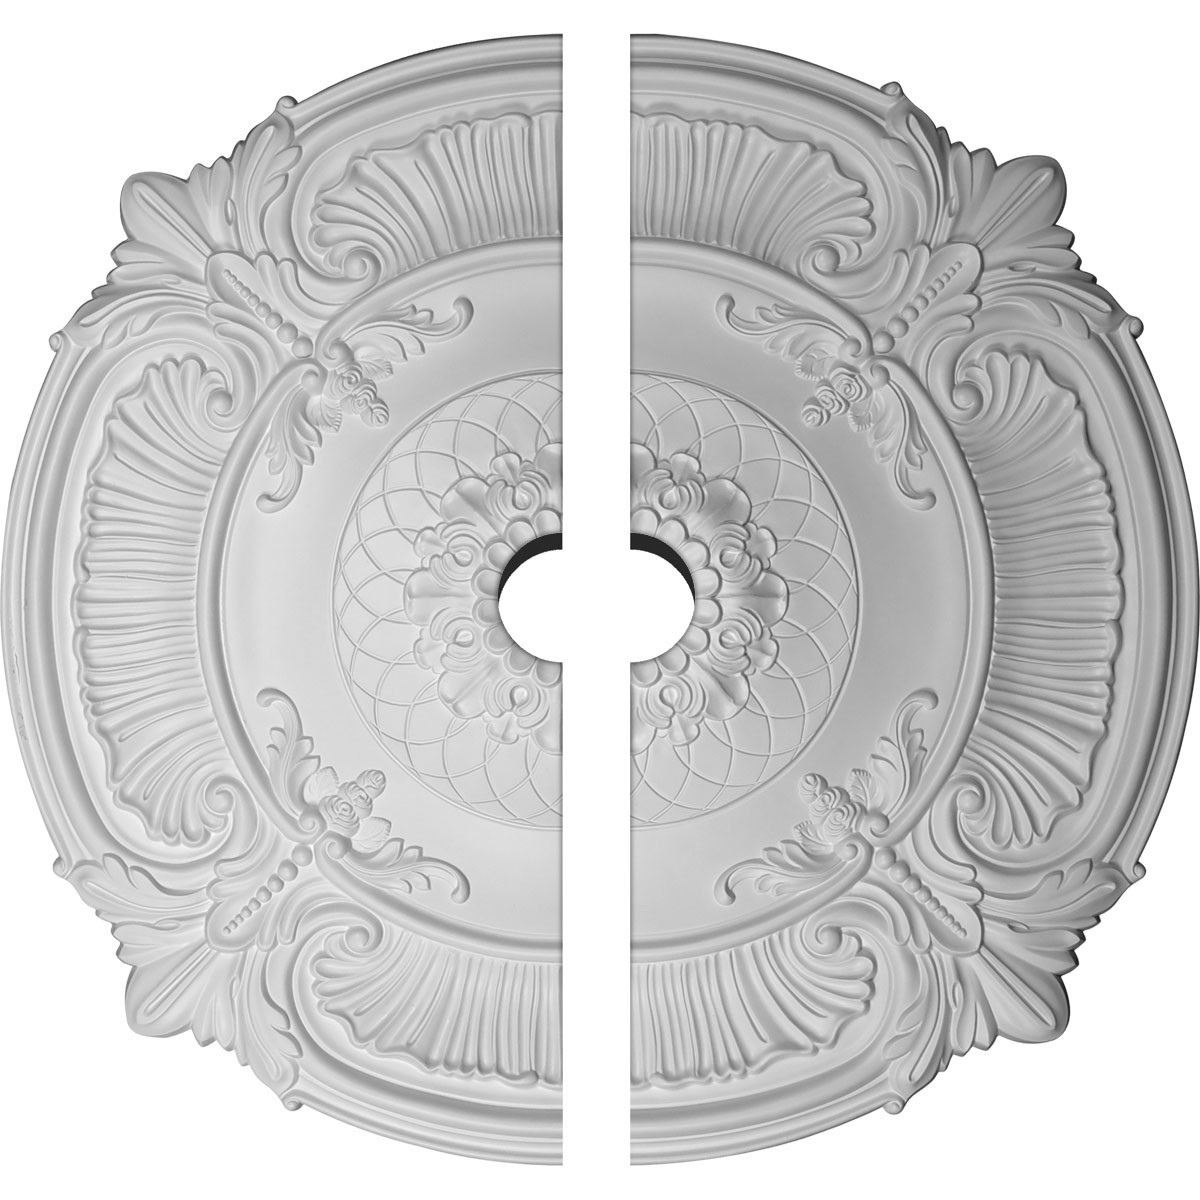 """EM-CM39AT2-05000 - 39 1/2""""OD x 3 3/4""""ID x 2 1/2""""P Attica Ceiling Medallion, Two Piece (Fits Canopies up to 3 3/4"""")"""